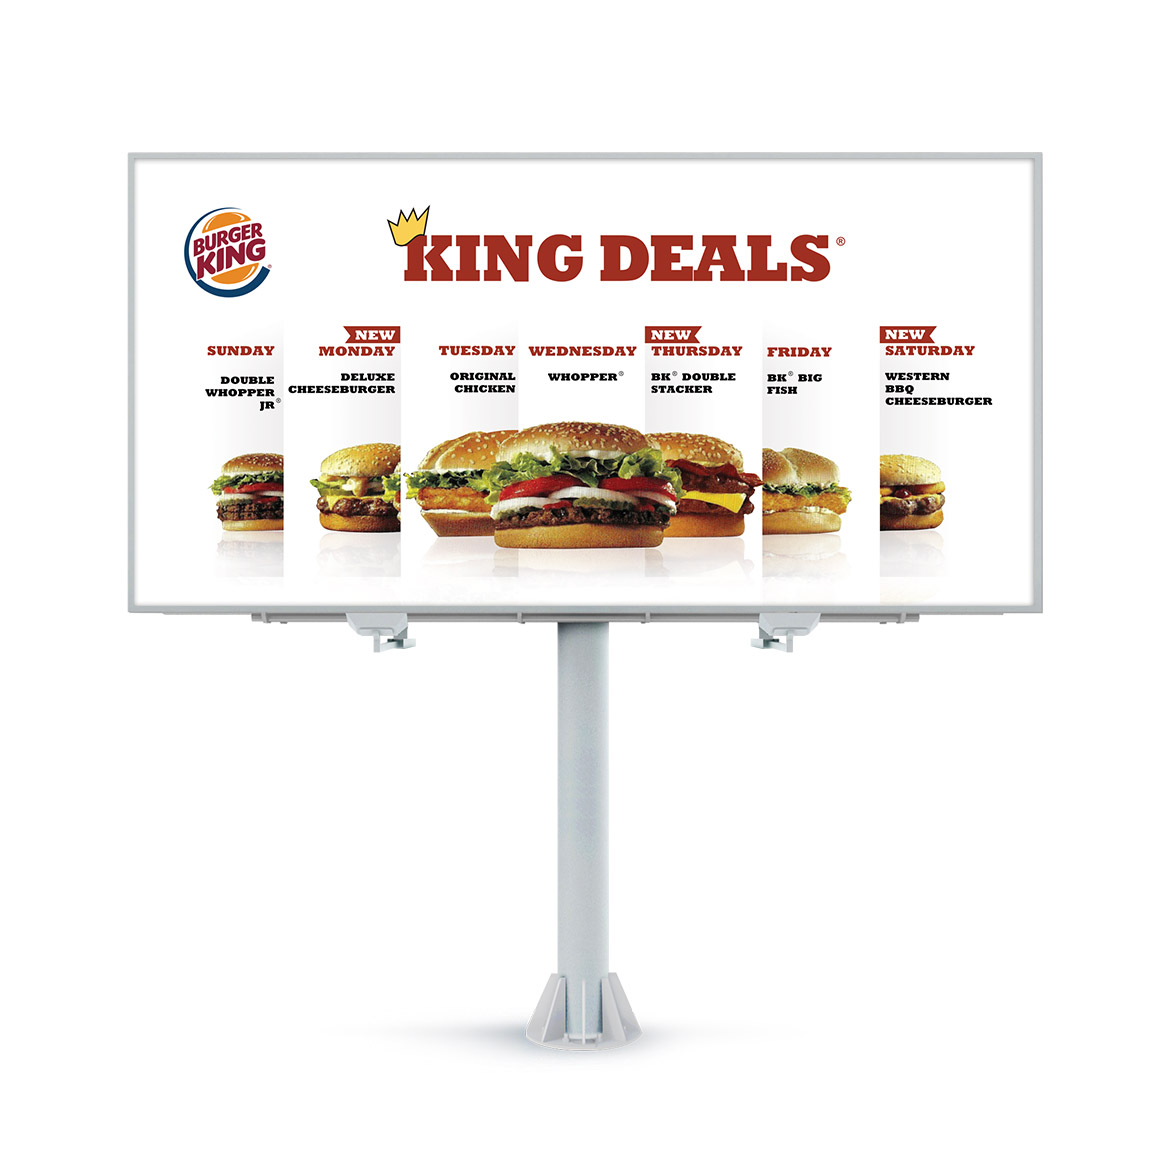 Billboard-Design-Burger-King-King-Deals